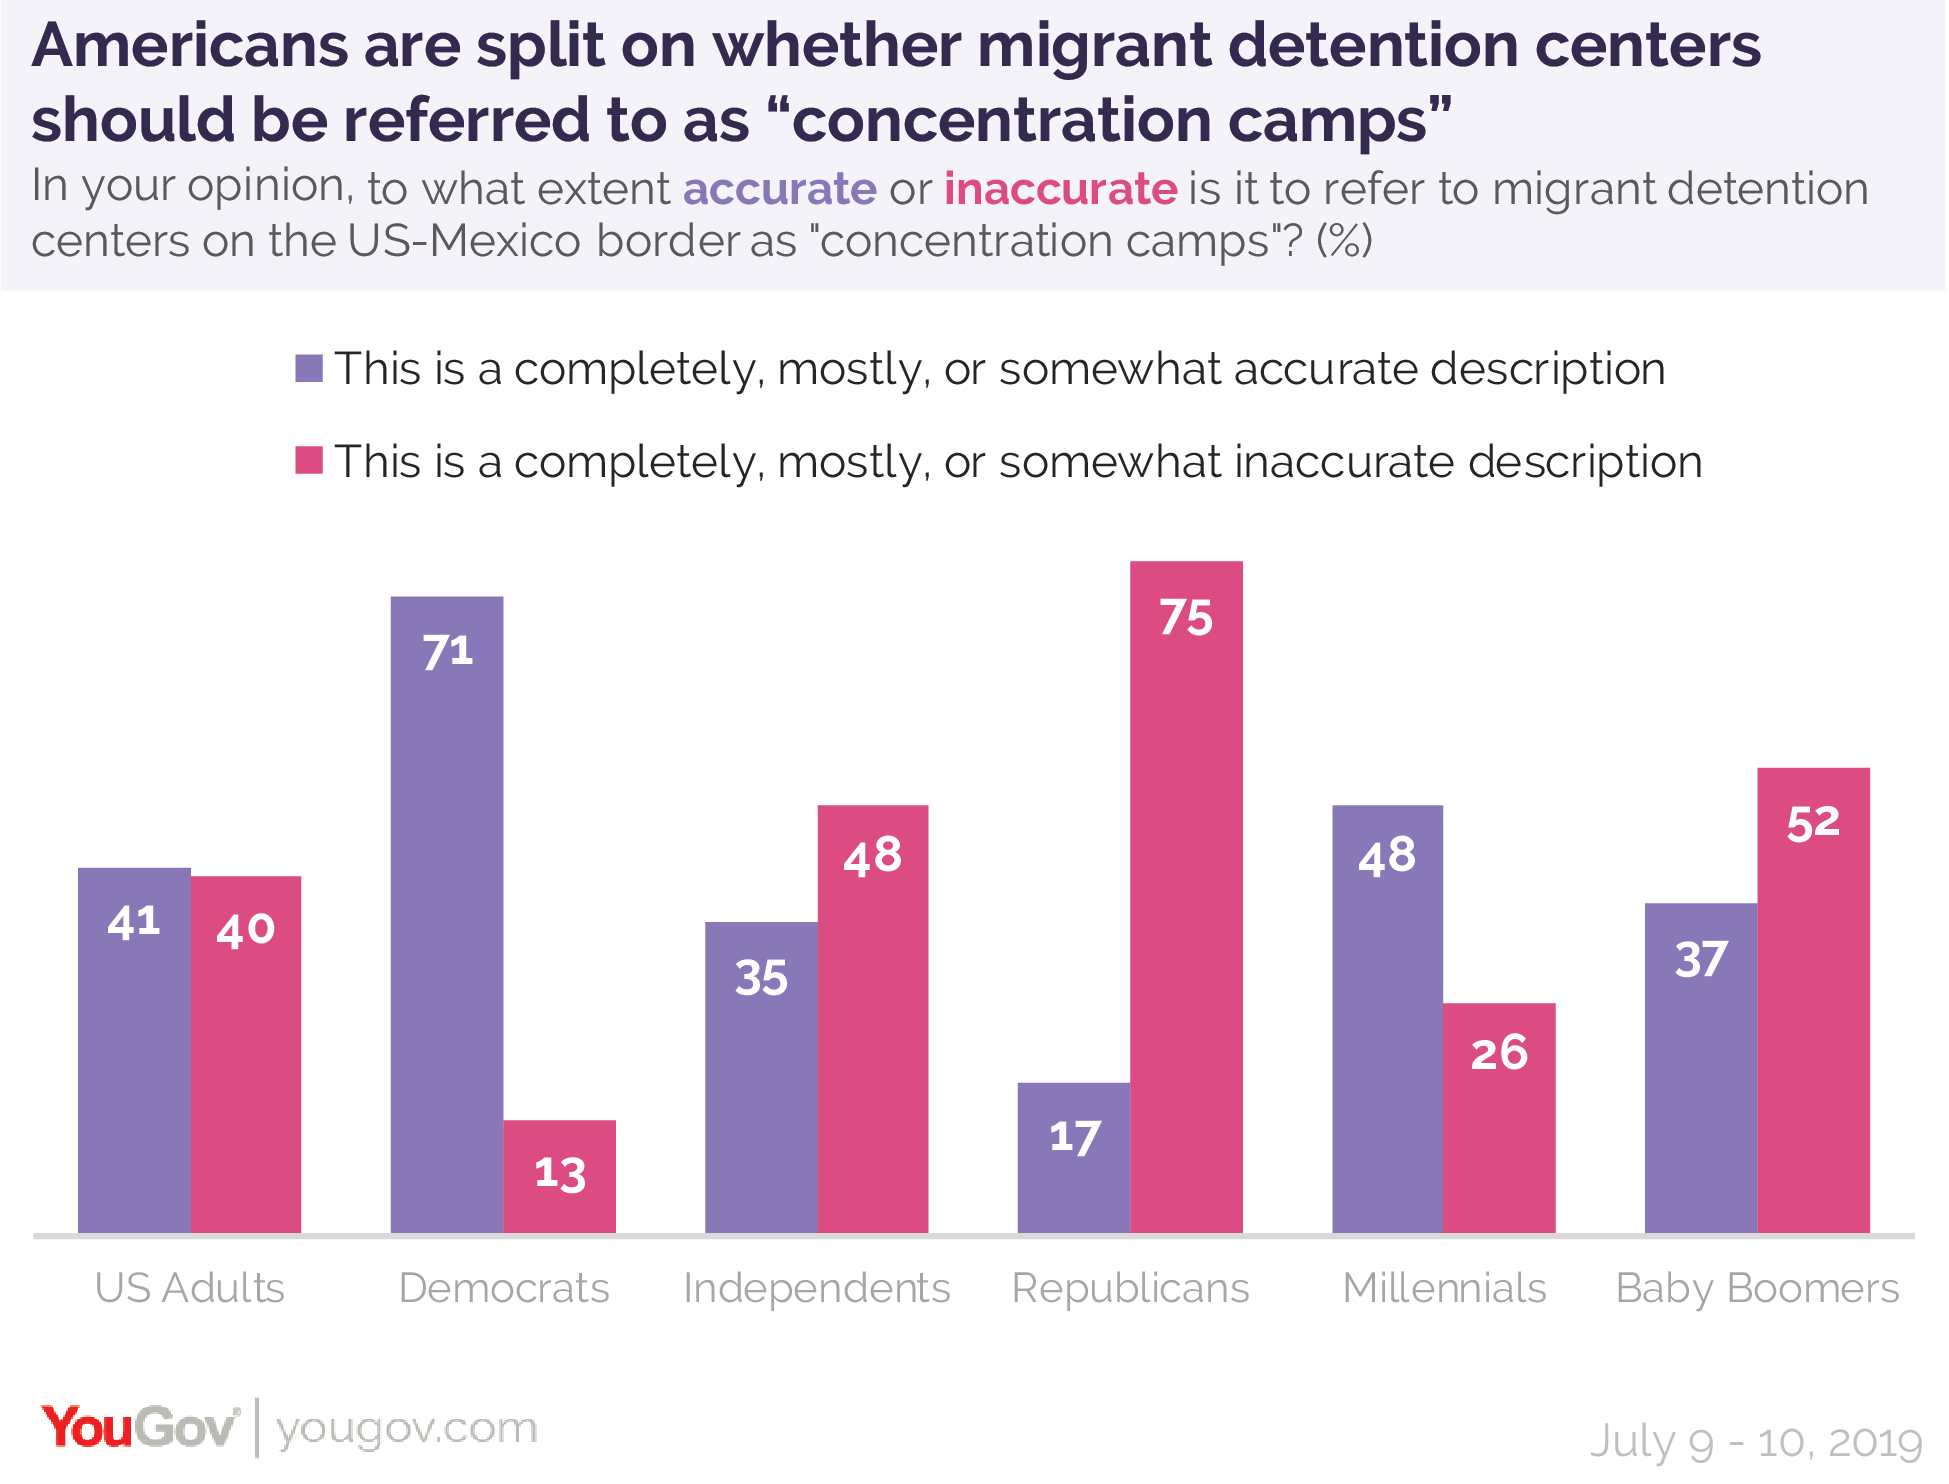 Americans are split on whether migrant detention centers should be referred to as concentration camps